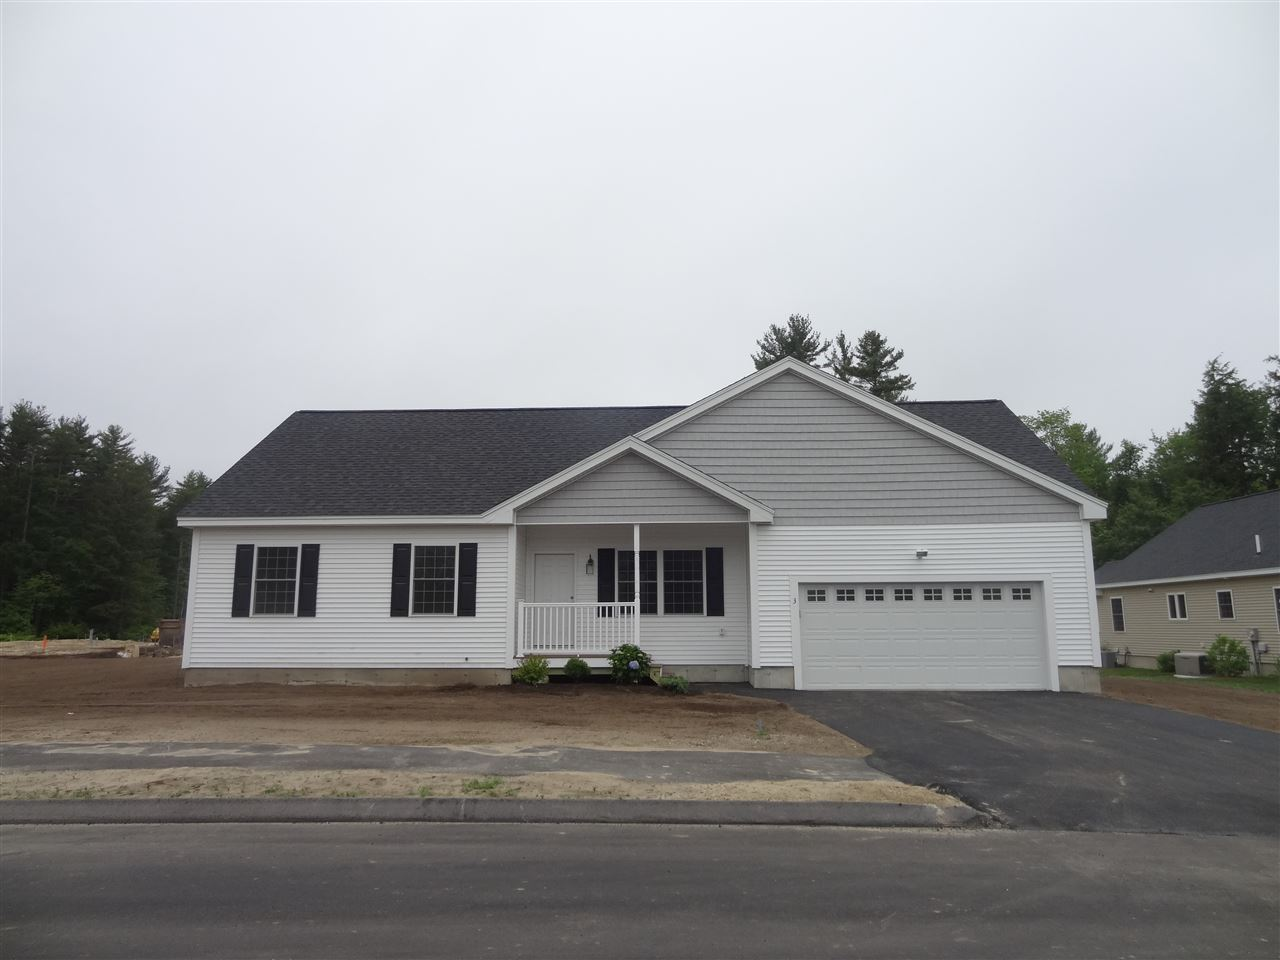 Photo of 3 Nickerson Drive Concord NH 03303